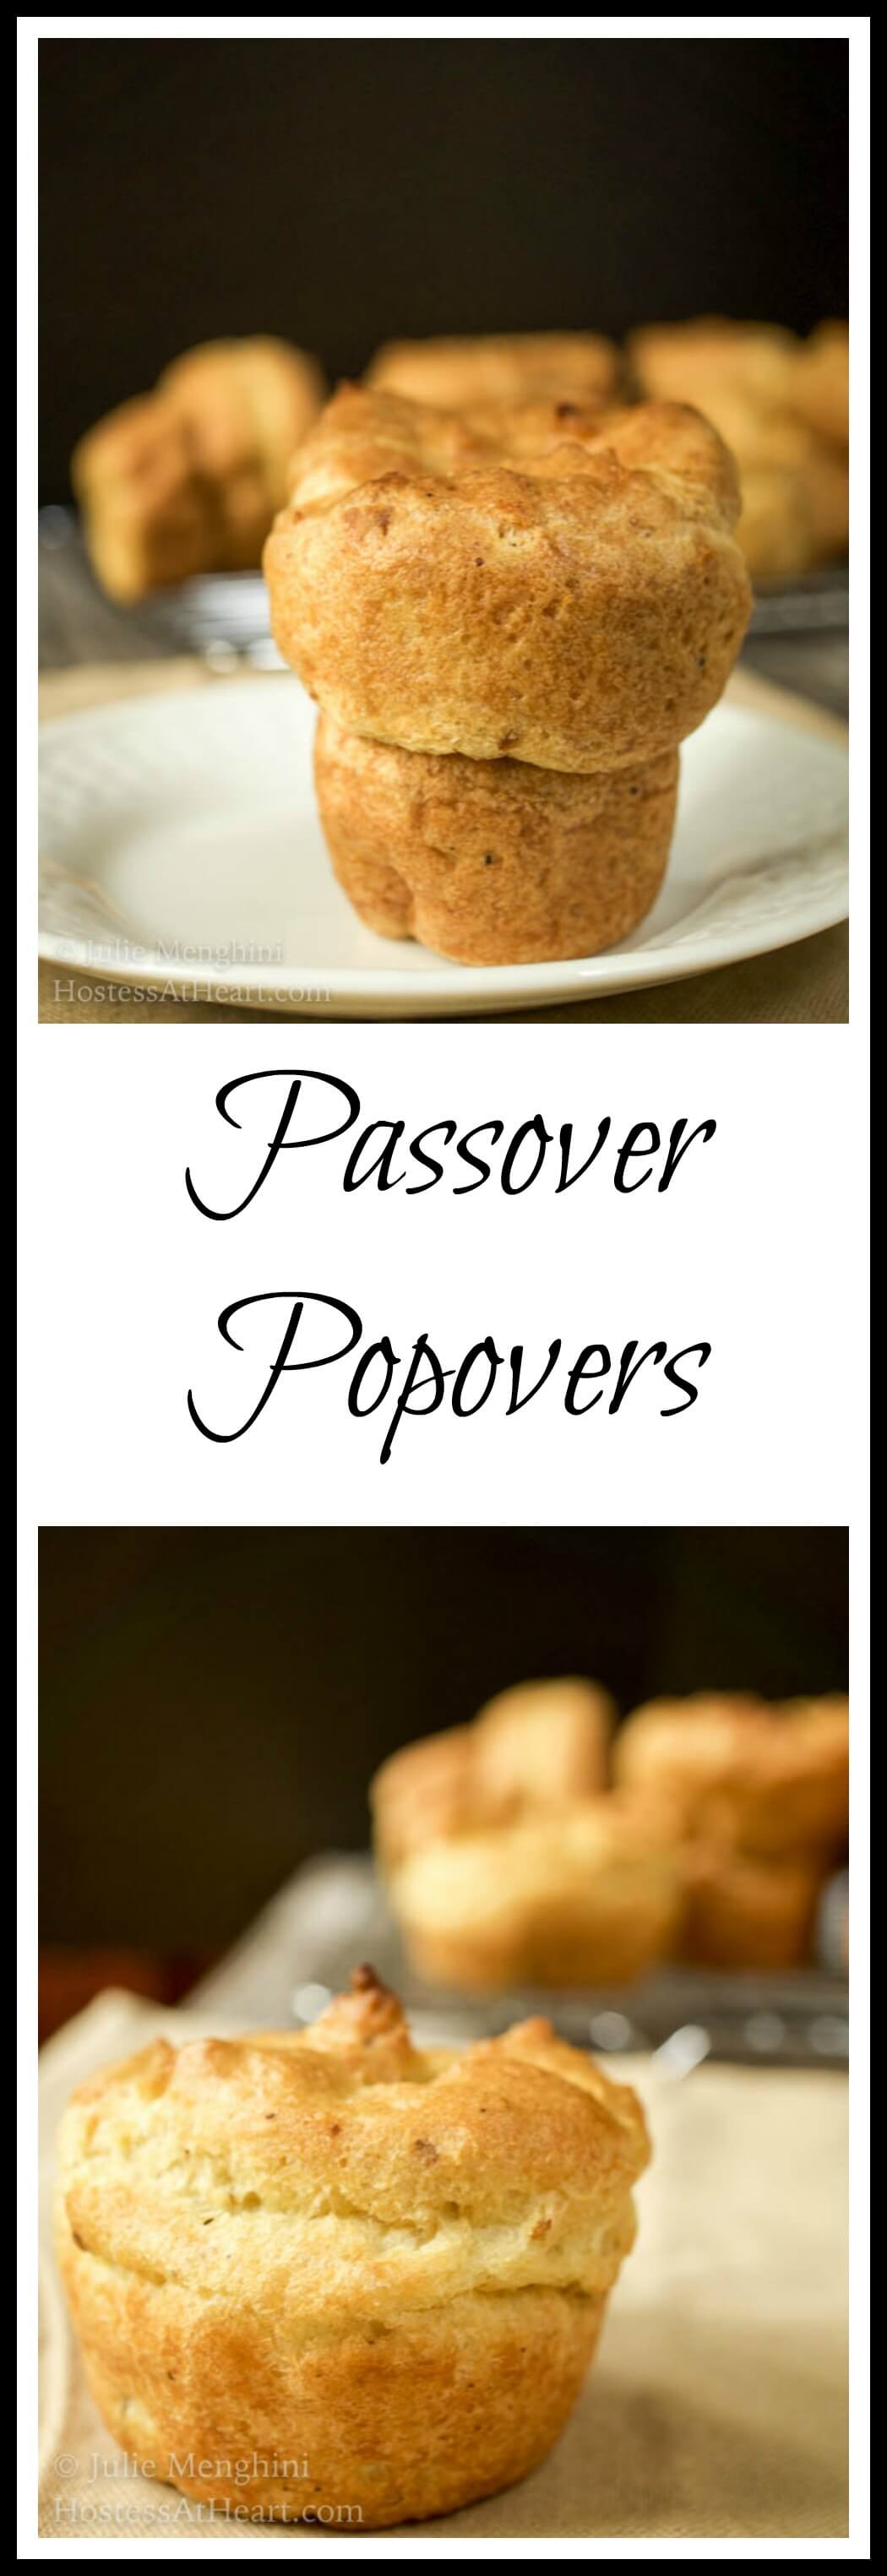 Passover popovers are moist and have a soft crumb. This recipe is versatile and can be made as muffins, and would be a great addition to any meal. #bread, #breadrecipes, #homemadebread #baking